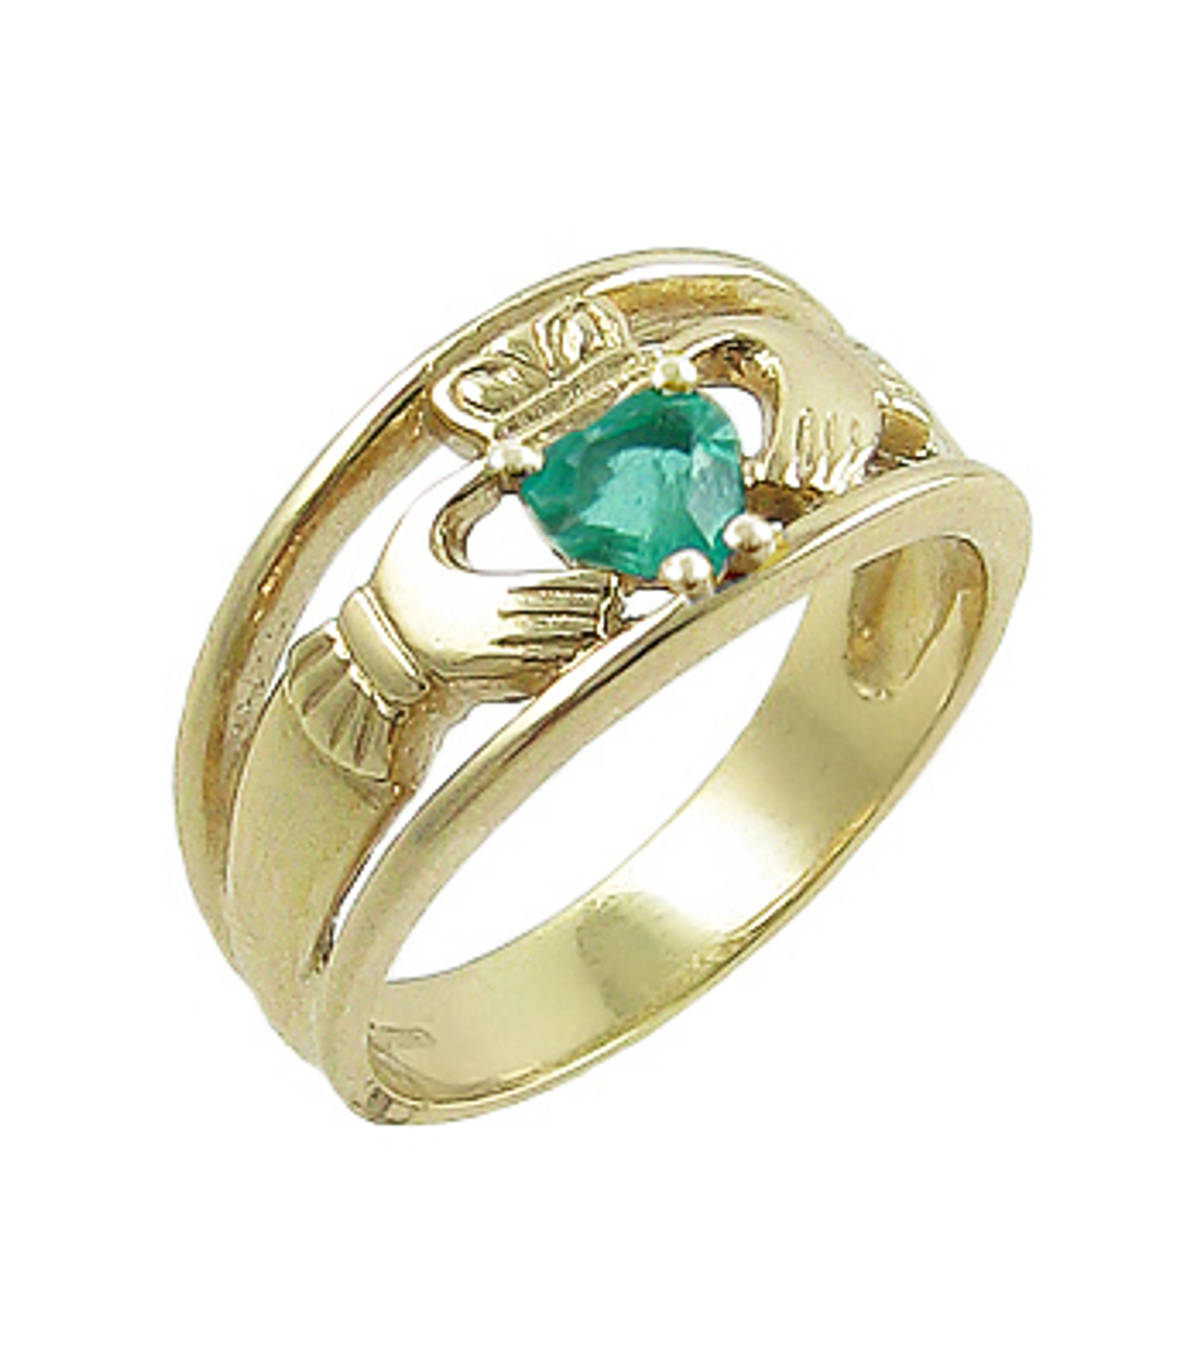 14 carat yellow gold 0.45cts emerald/0.06cts diamonds claddagh engagement ring